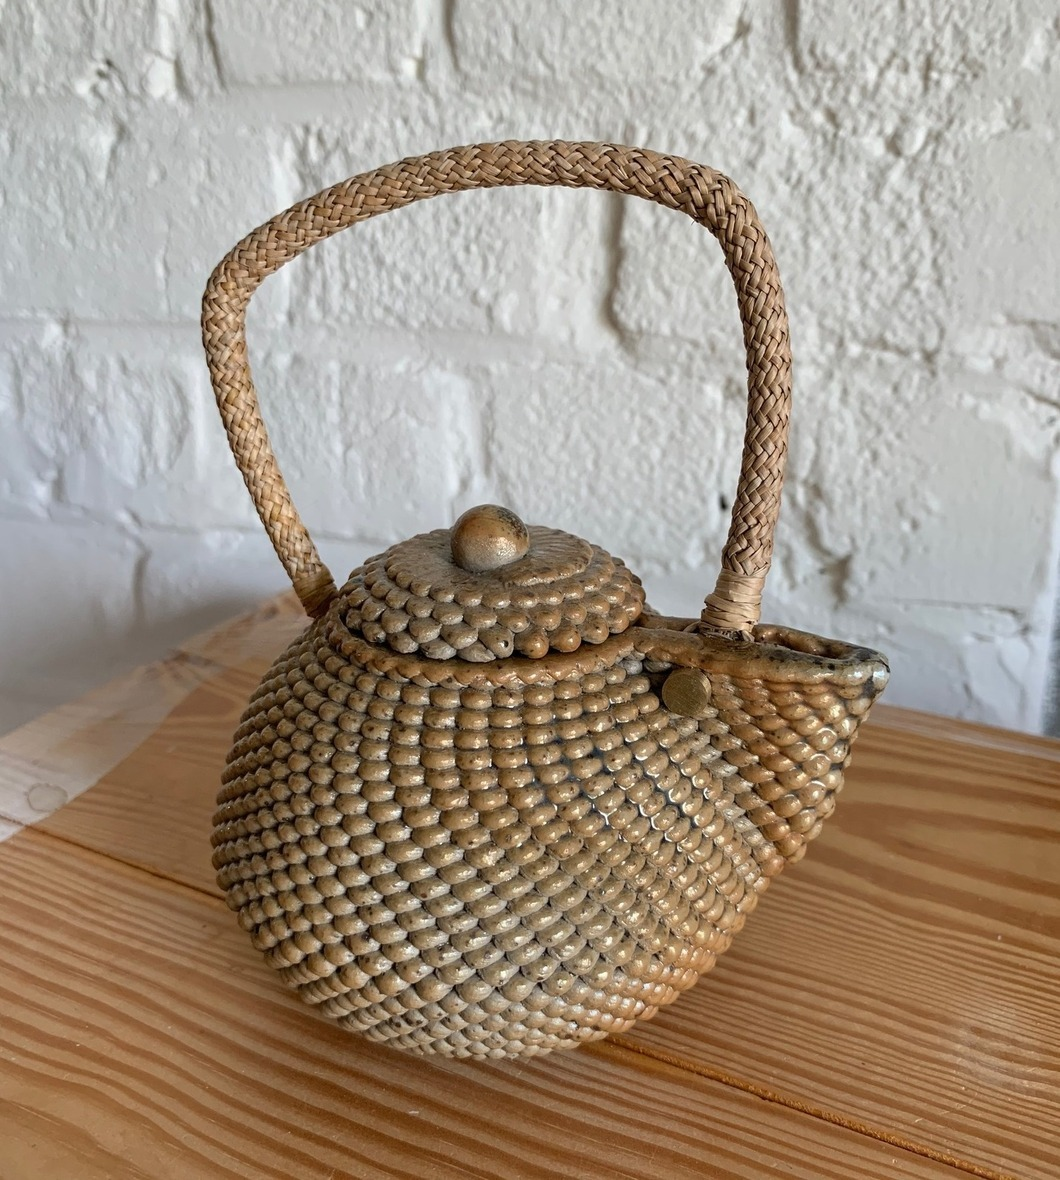 wood fired teapot by-FabCraft, TW